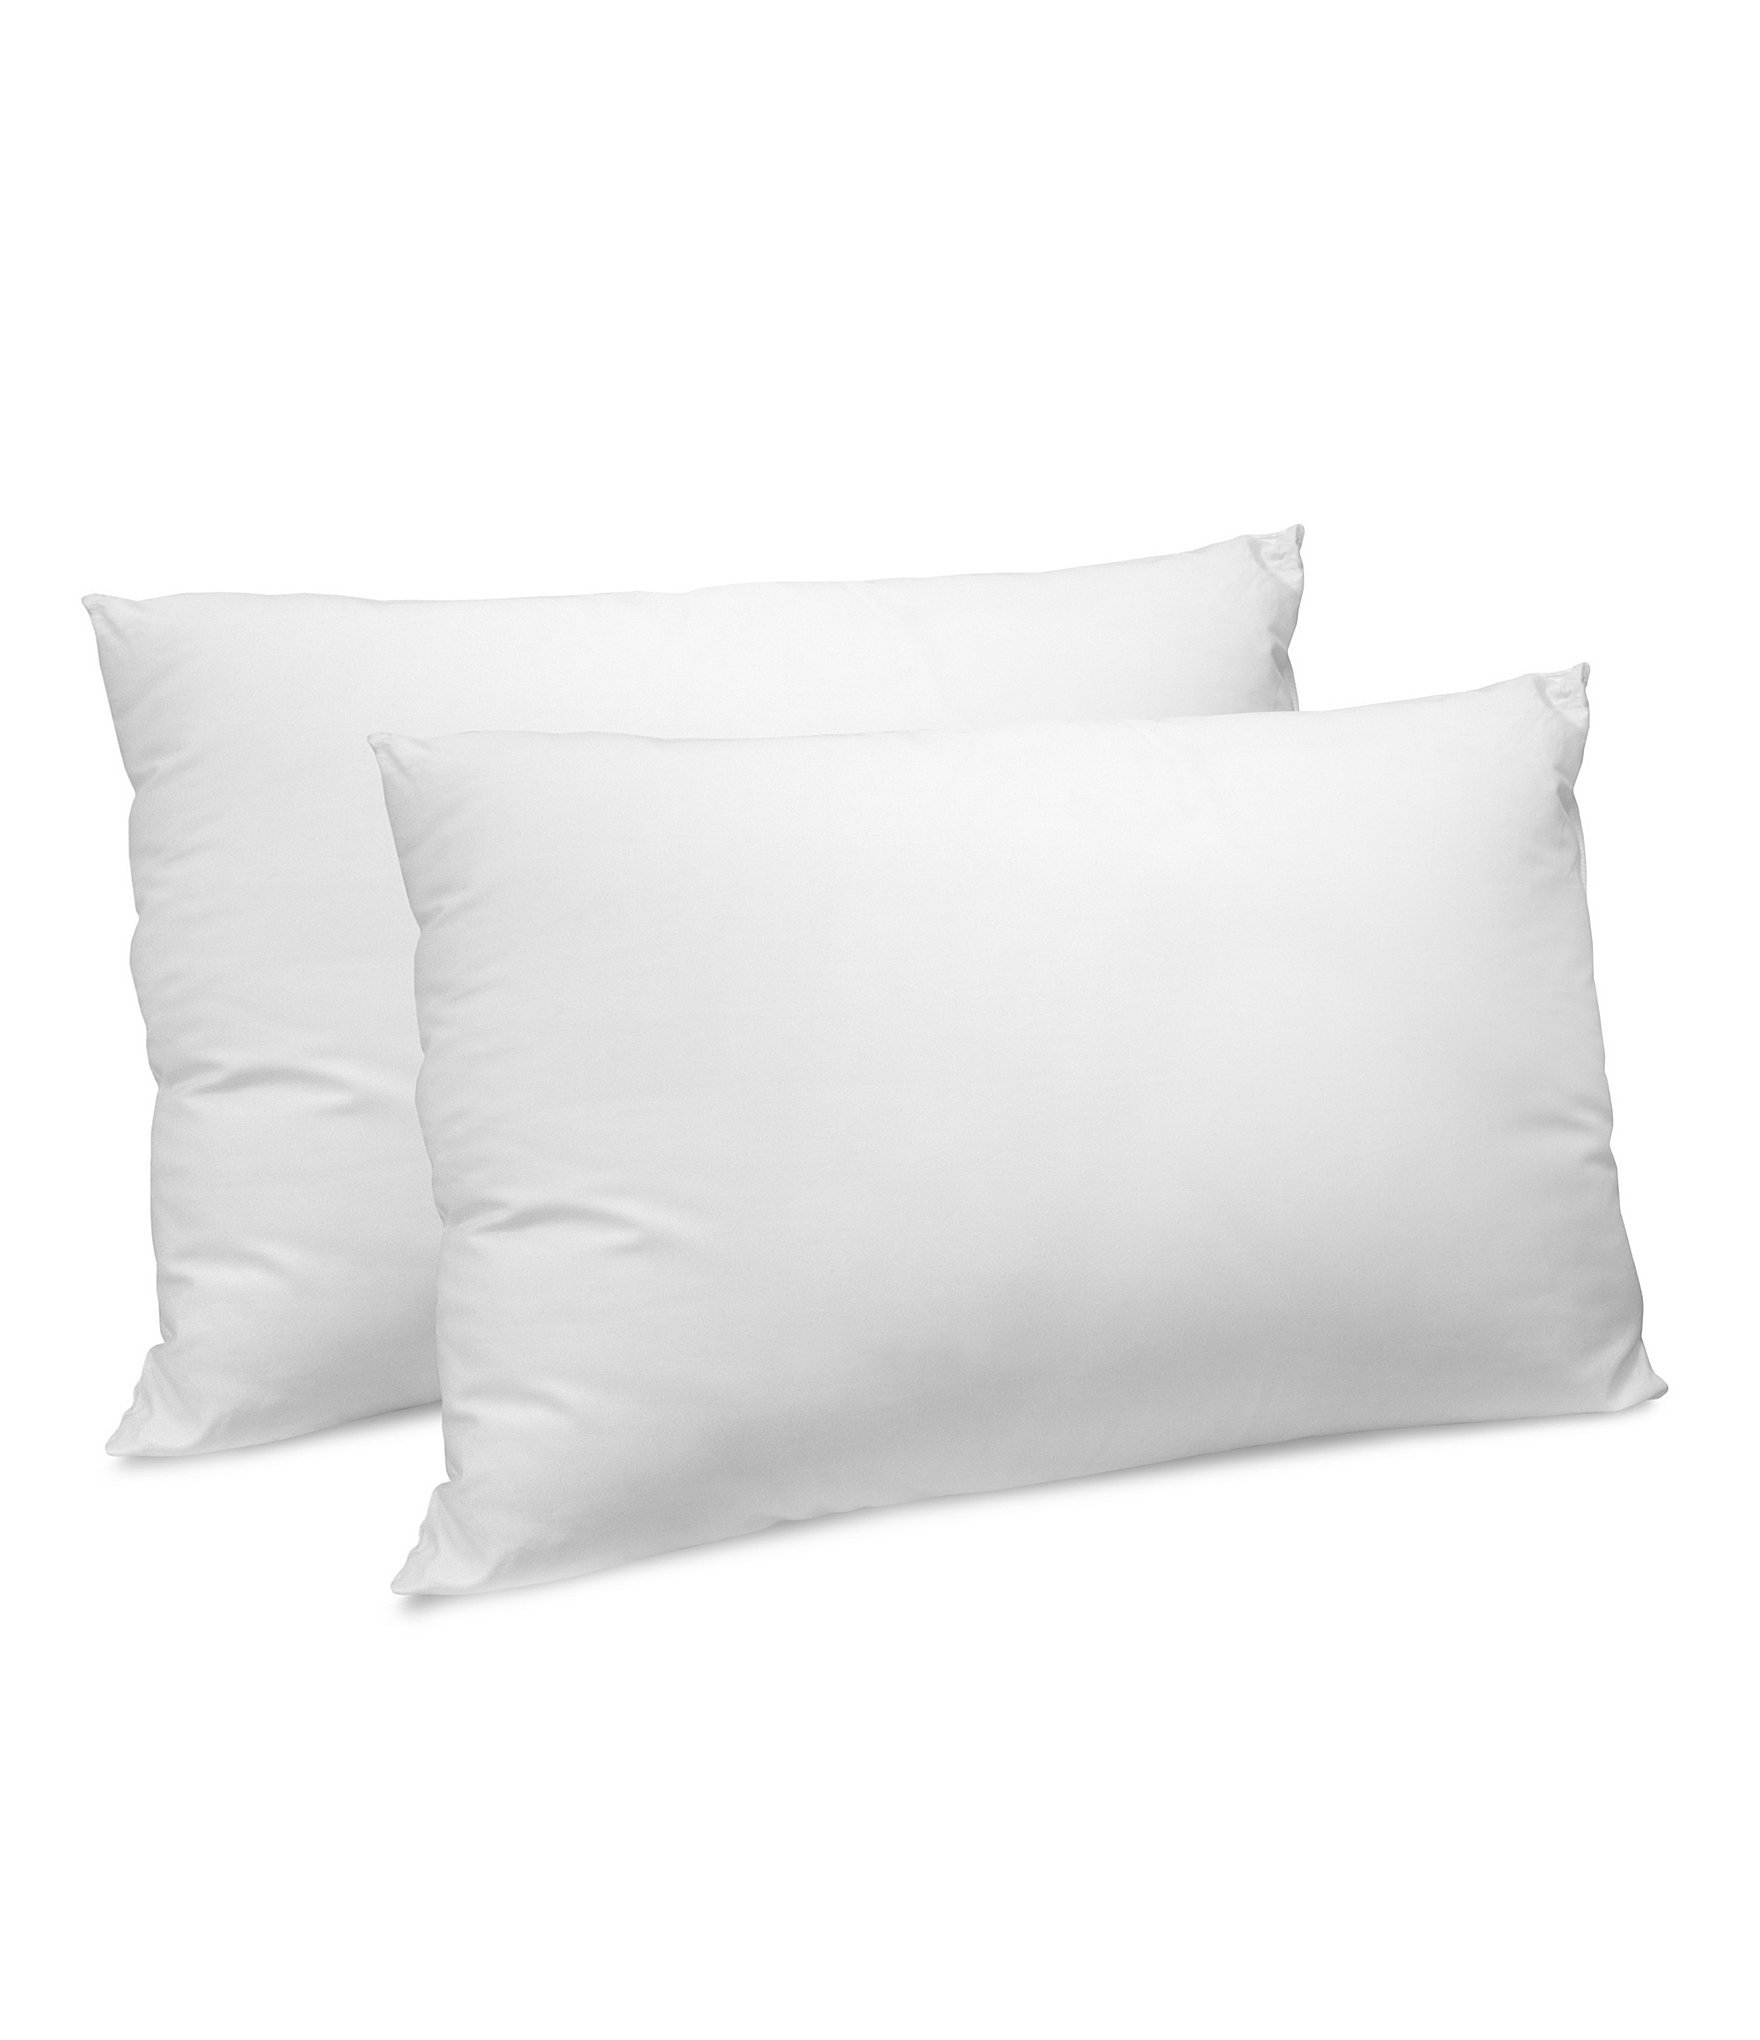 Sleep Upright Pillow | Bed Pillow With Arms | Oversized Bed Rest Pillow